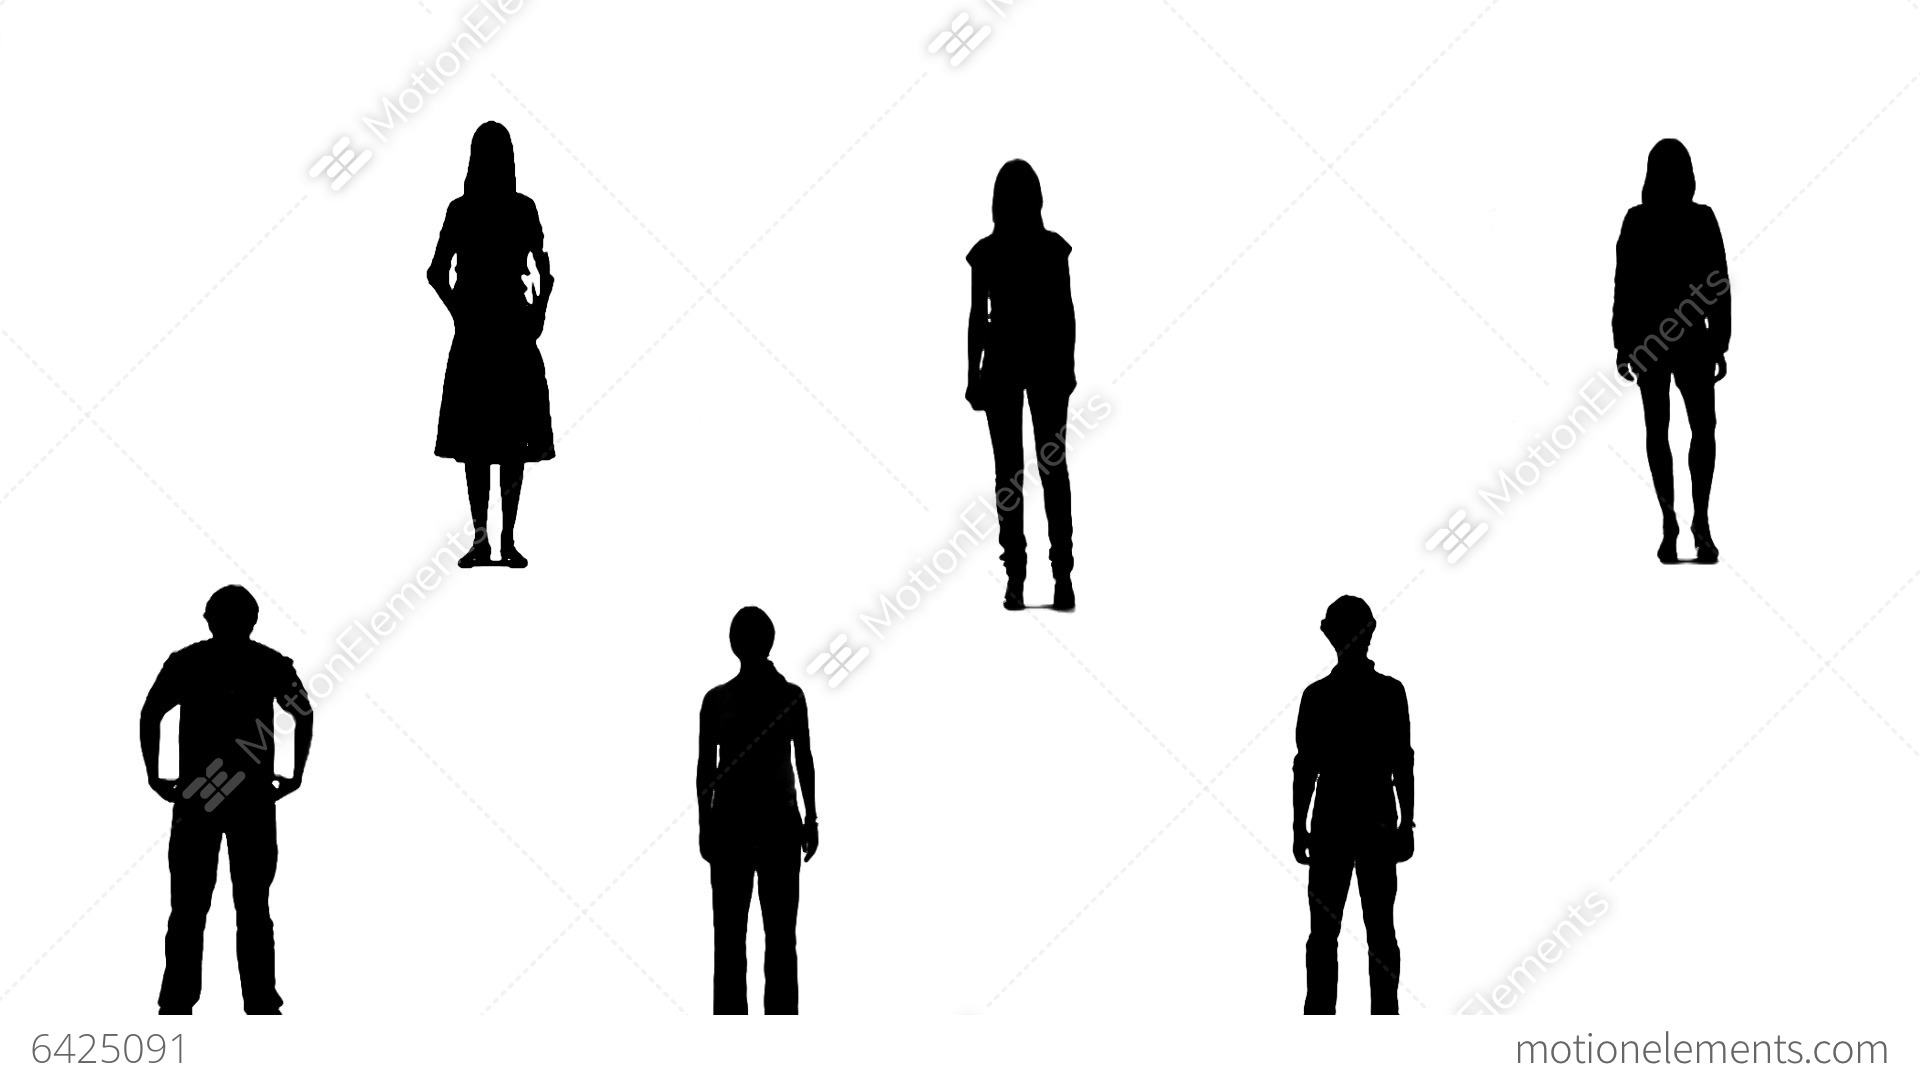 Silhouettes Of Young People Who Raise Arms Up 1 Stock